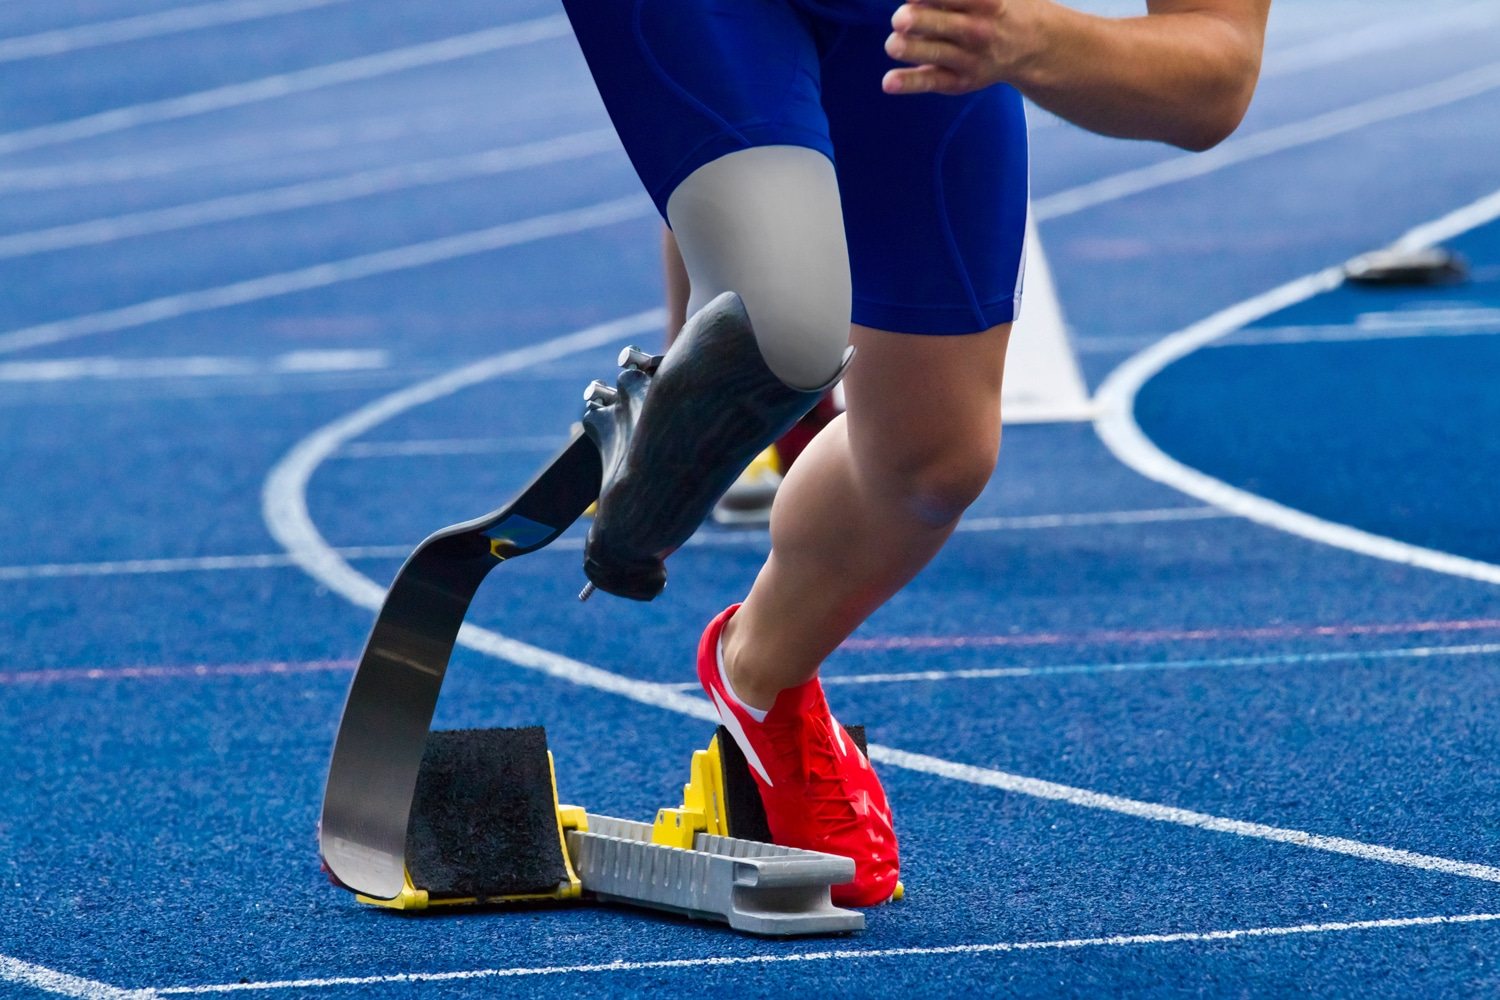 Sprinter with prosthetic